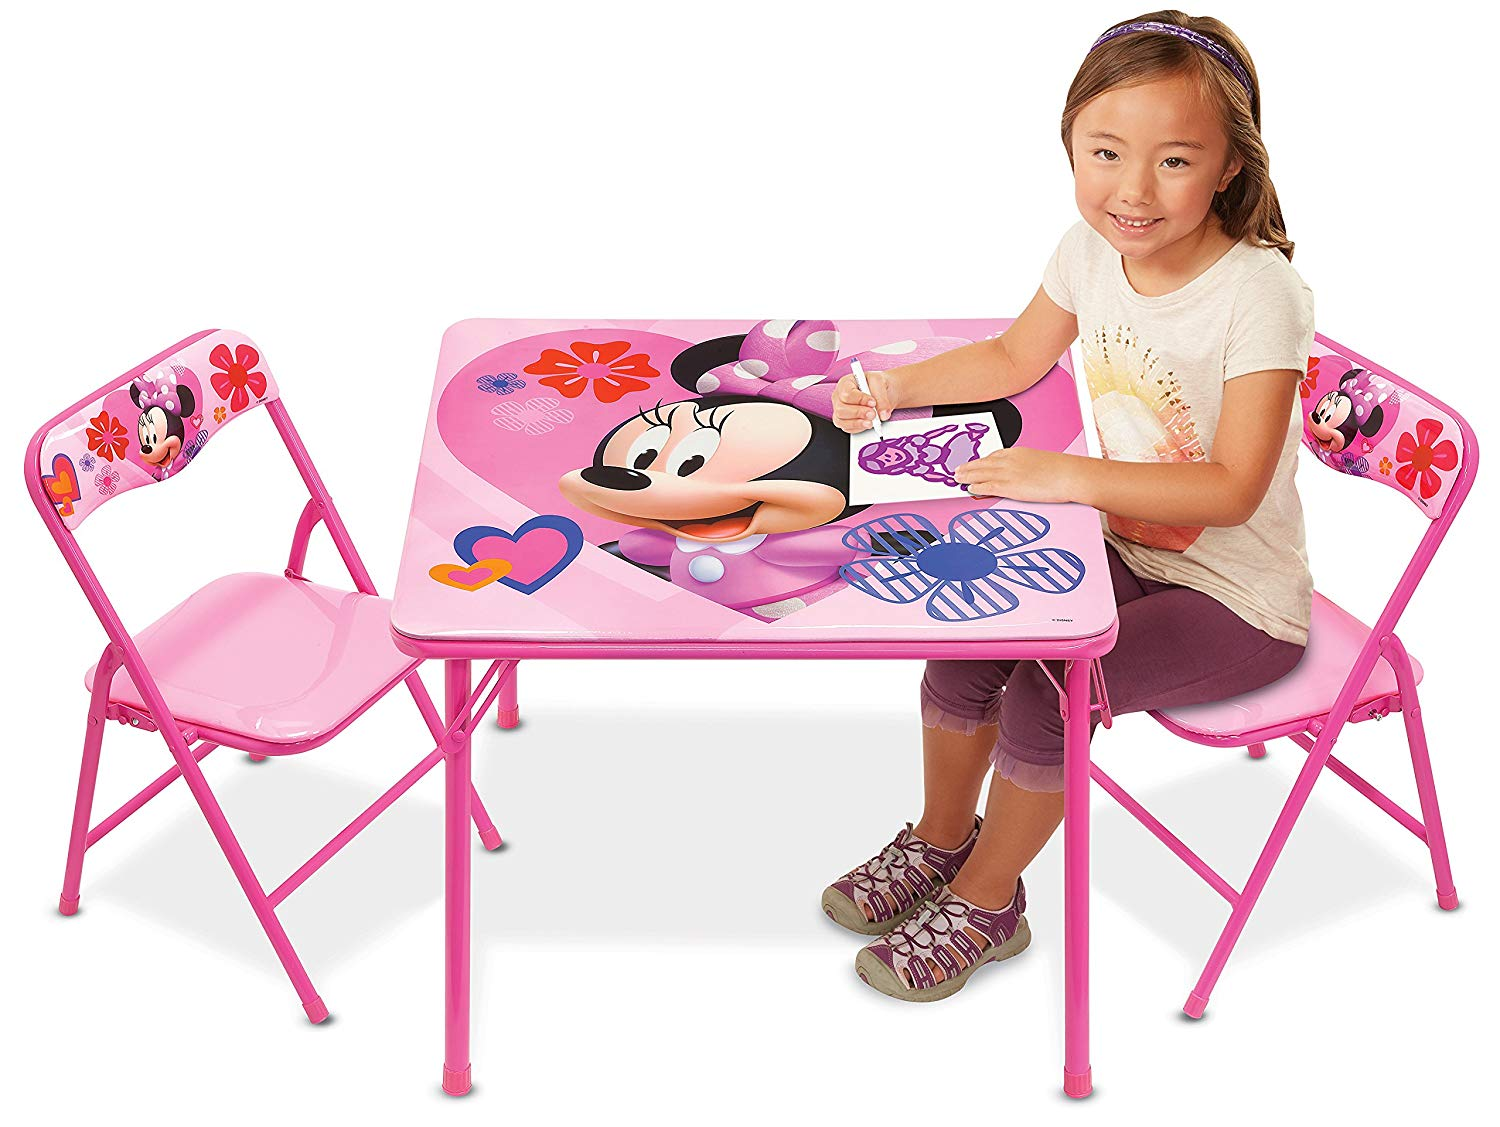 Best Activity Table Playsets in 2020 Reviews